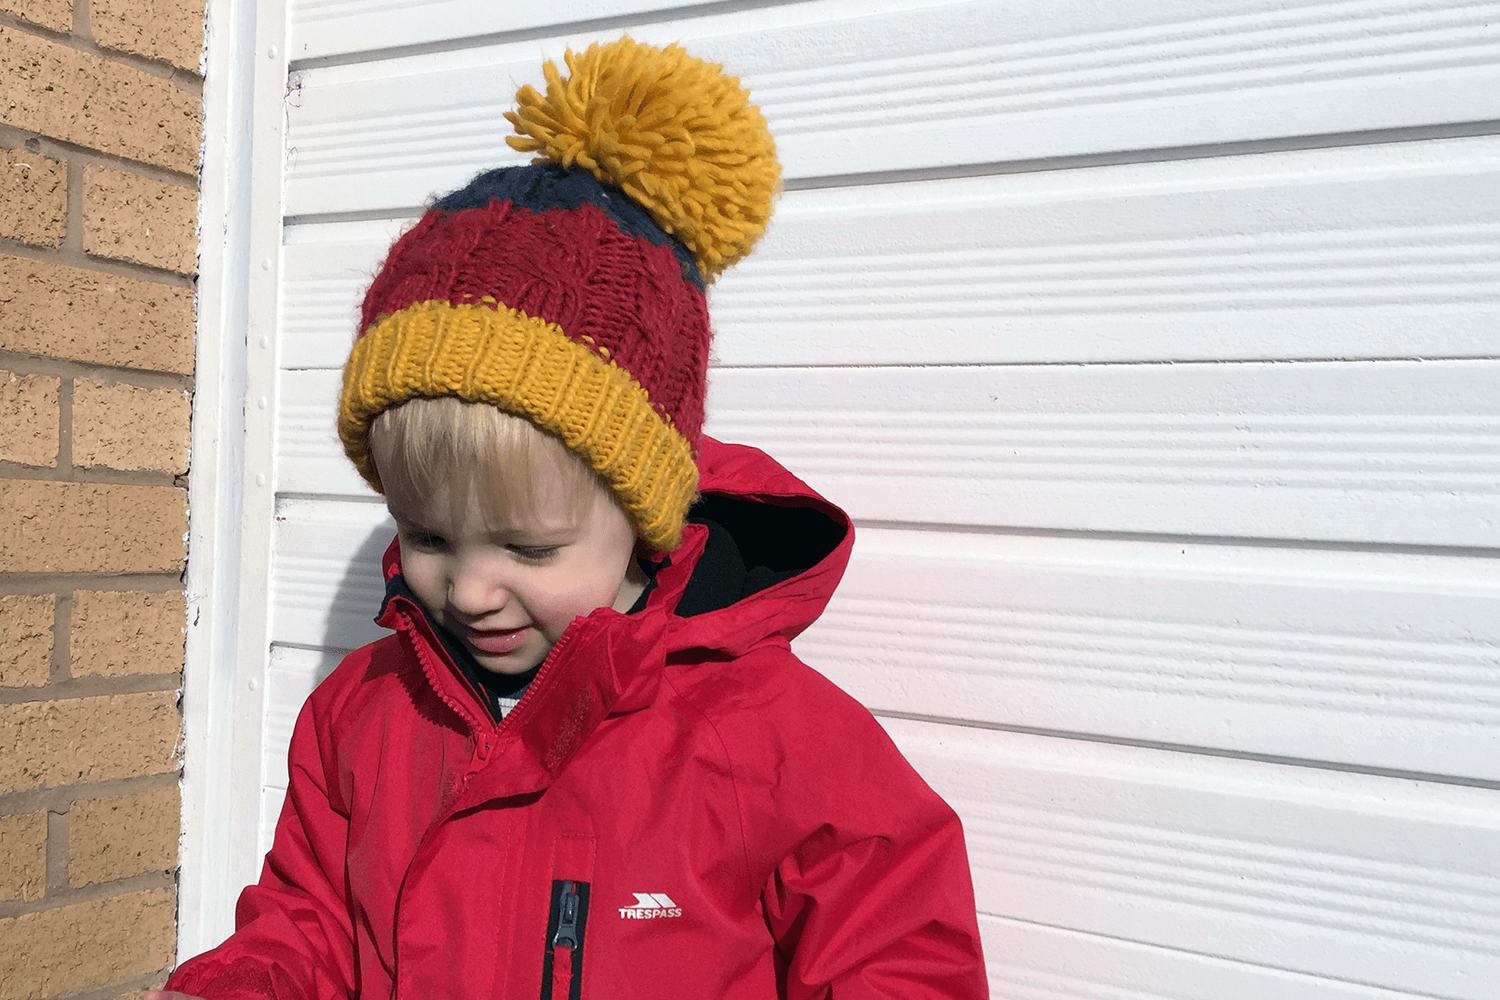 Gabe posing in front of the garage door in his hat with a massive bobble on top